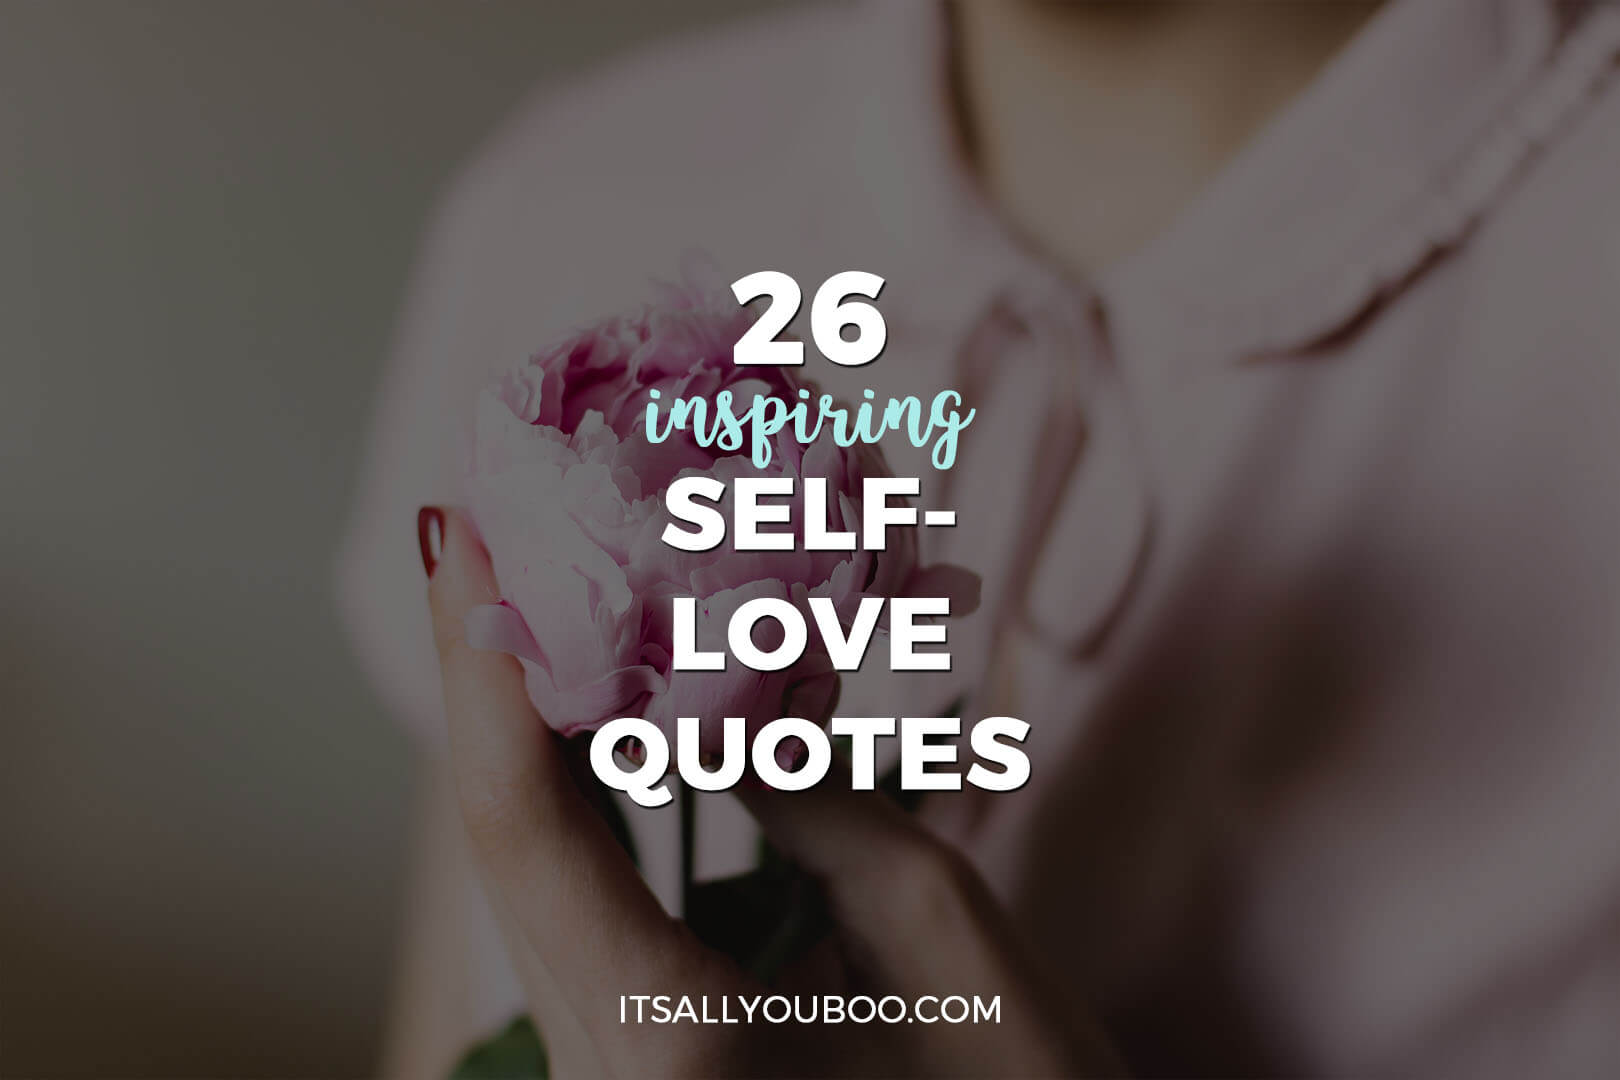 Quotes About Loving Yourself 26 Inspiring Selflove Quotes  It's All You Boo